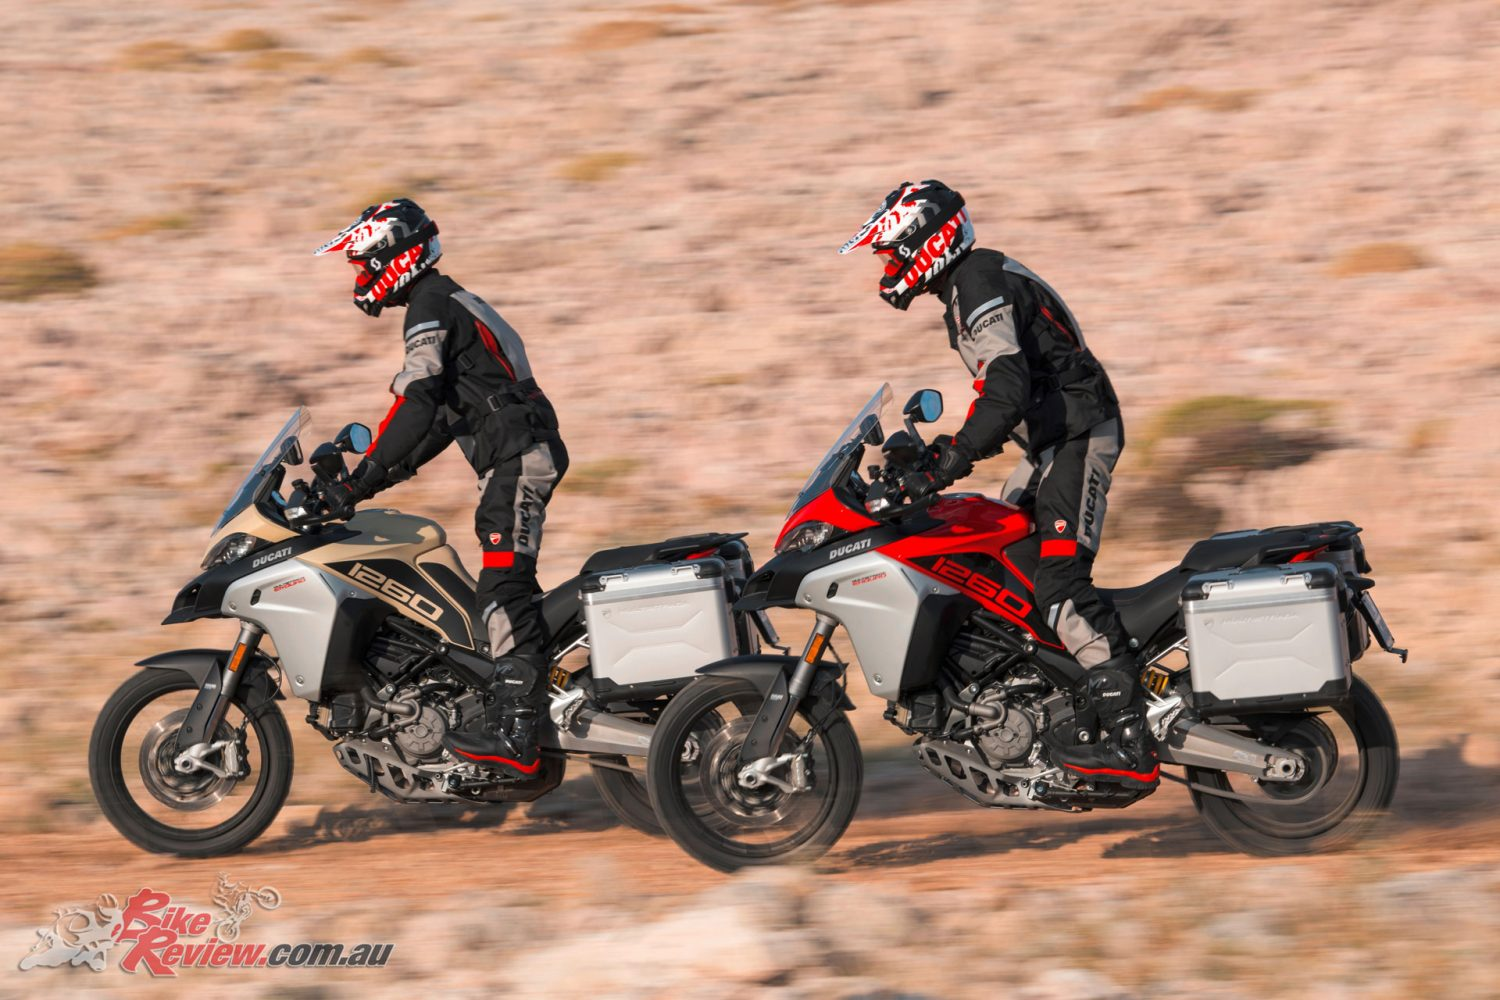 Ducati announce big updates to the Multistrada Enduro with a 1260 edition arriving in 2019